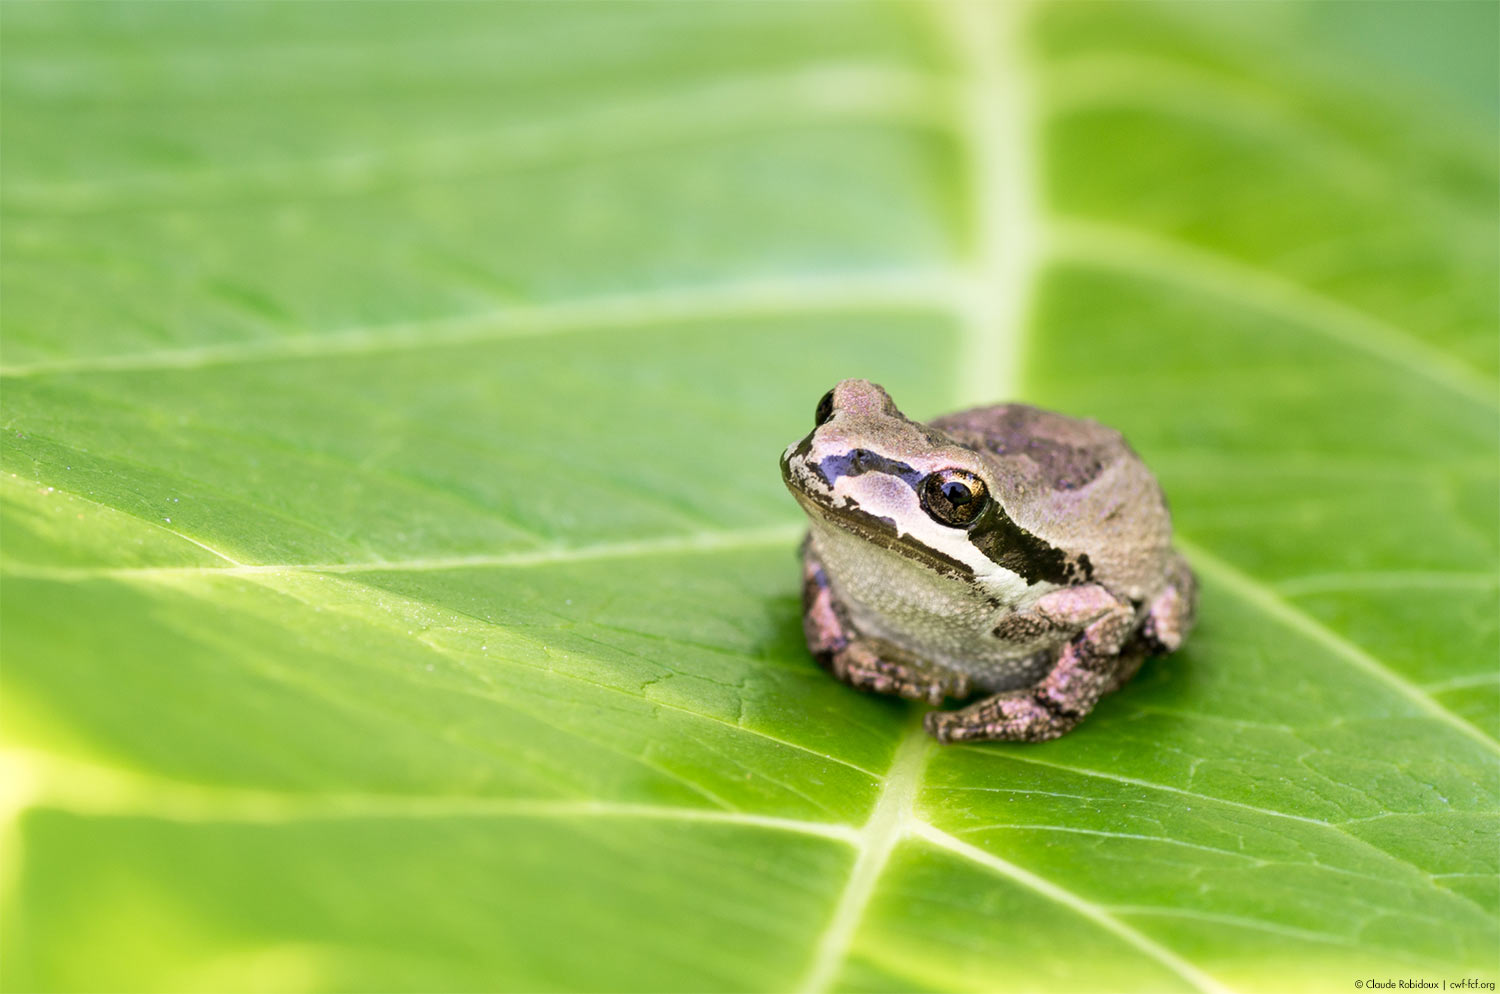 small frog on leaf